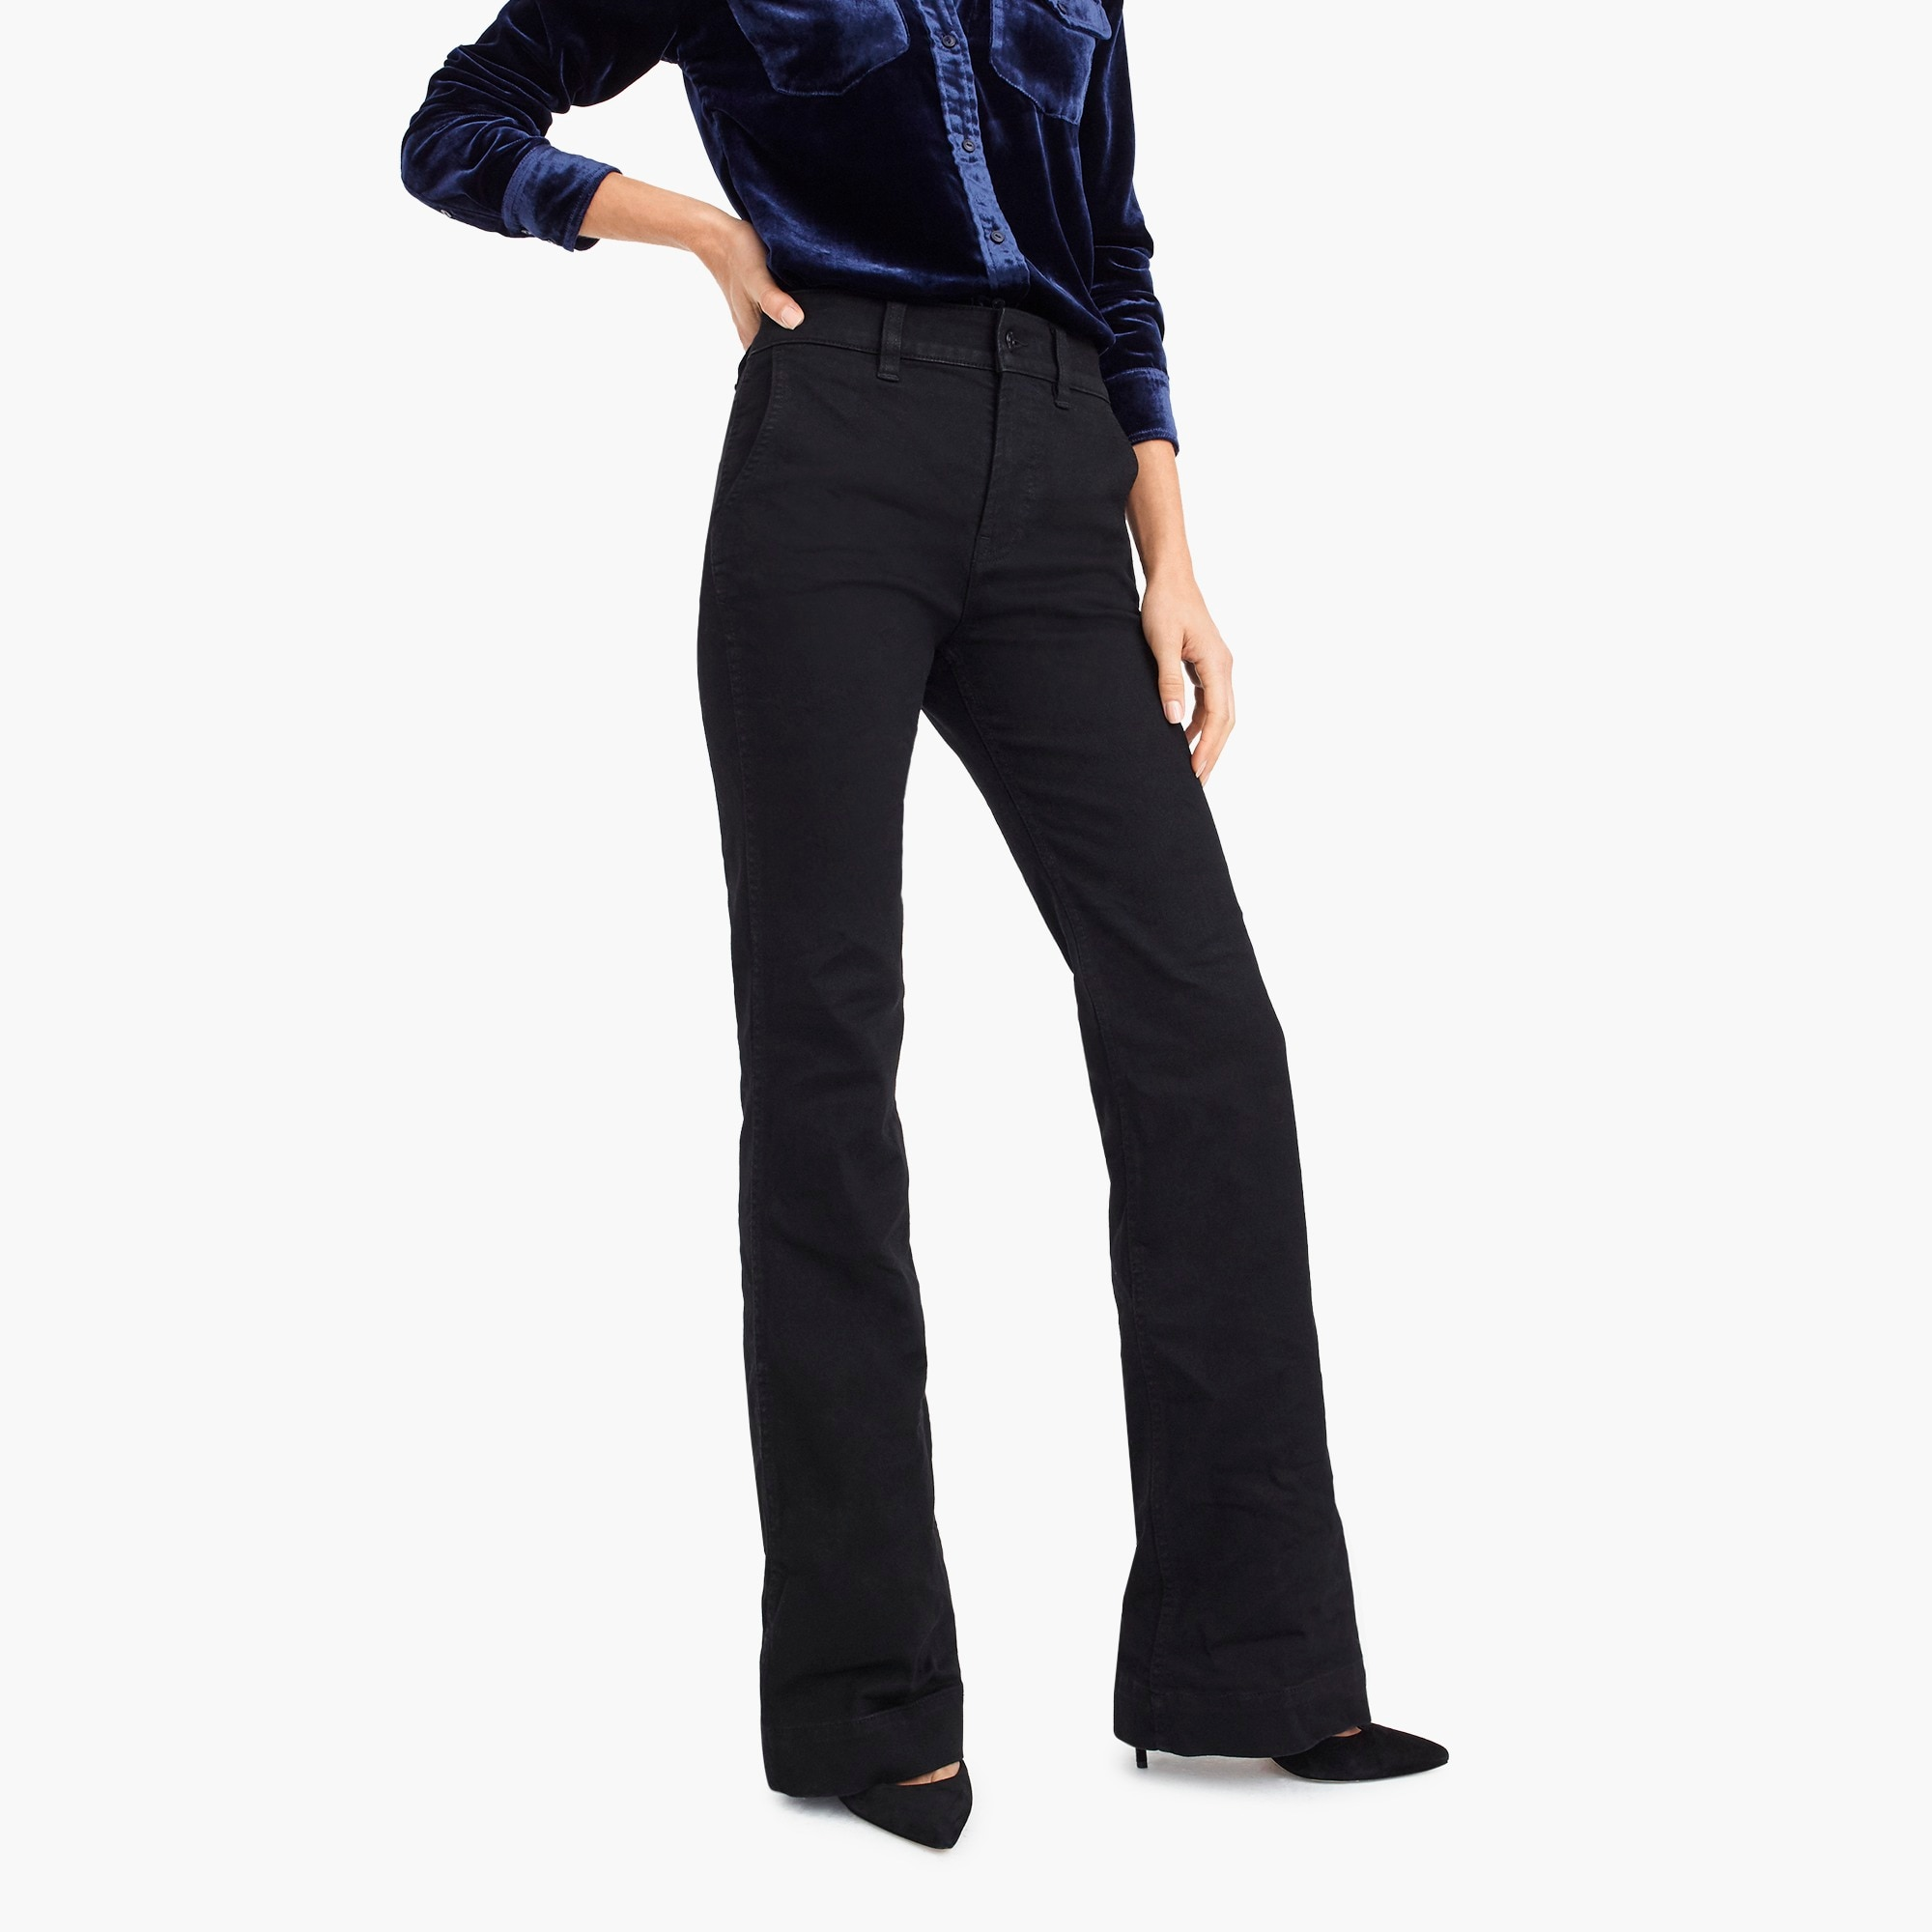 womens Tall wide-leg trouser jean in black